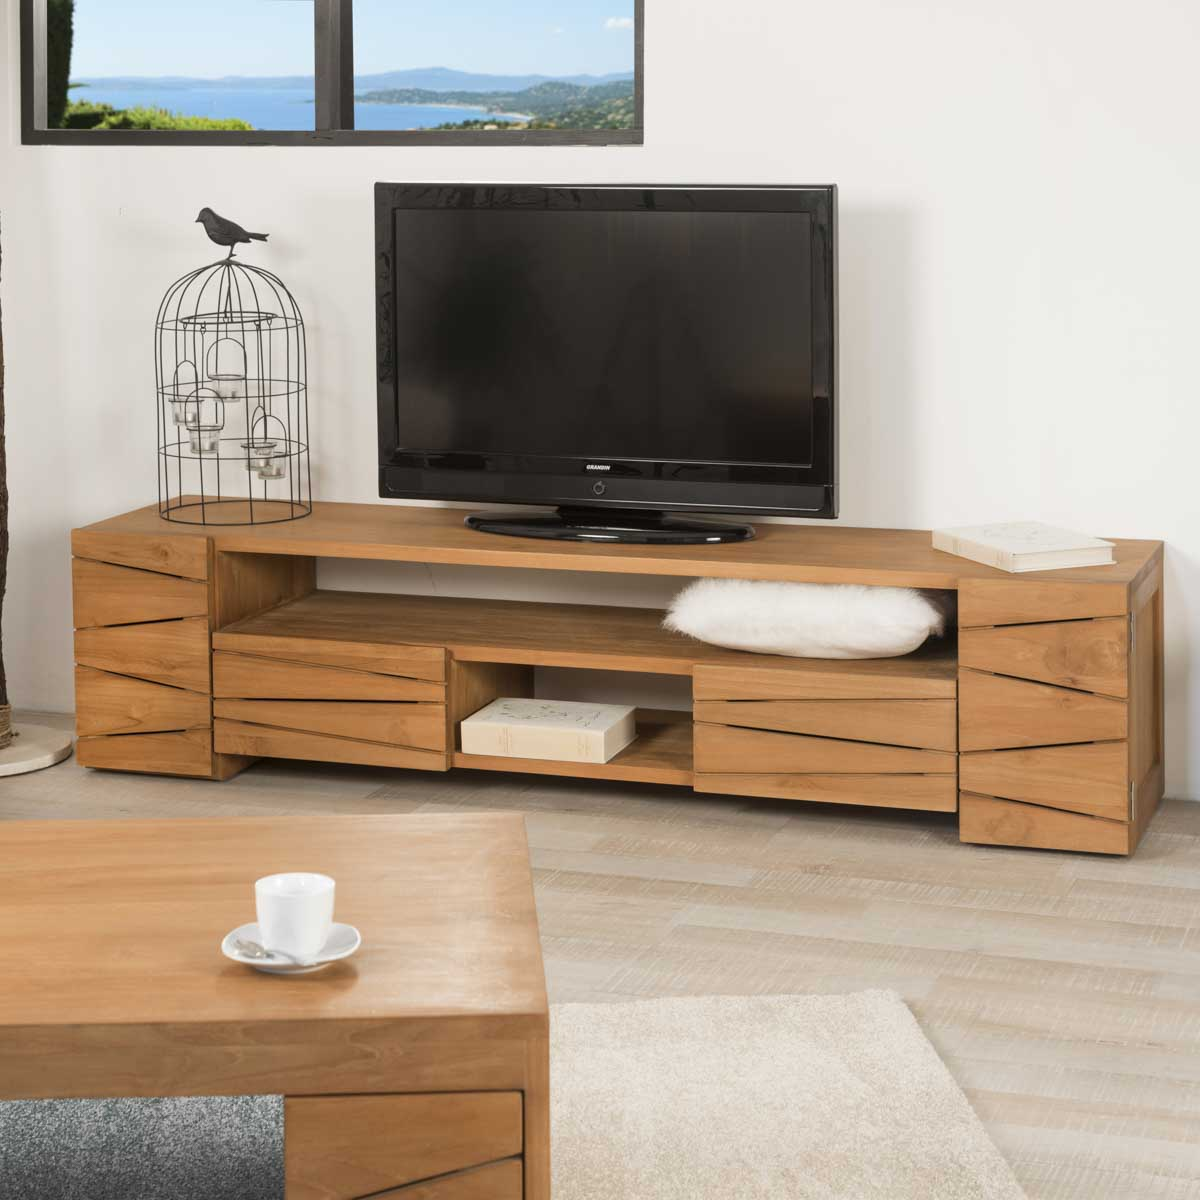 Meuble Tv Teck Meuble Tv Bois Naturel Rectangle S R Nit 170  # Meuble Tv Teck Massif Design